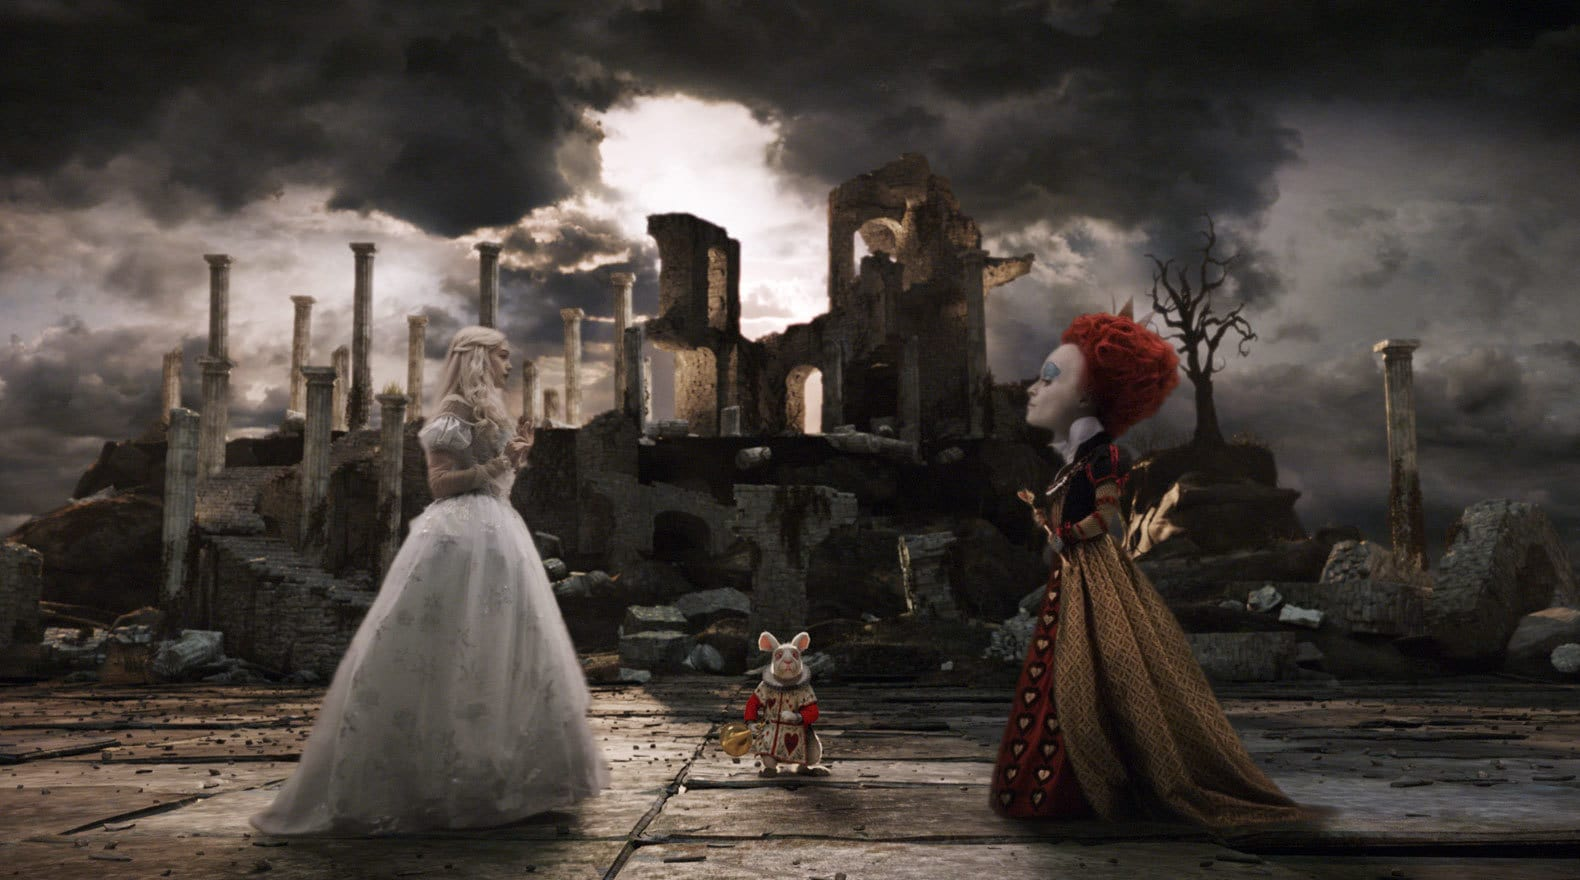 The White Queen and the Red Queen Face Off